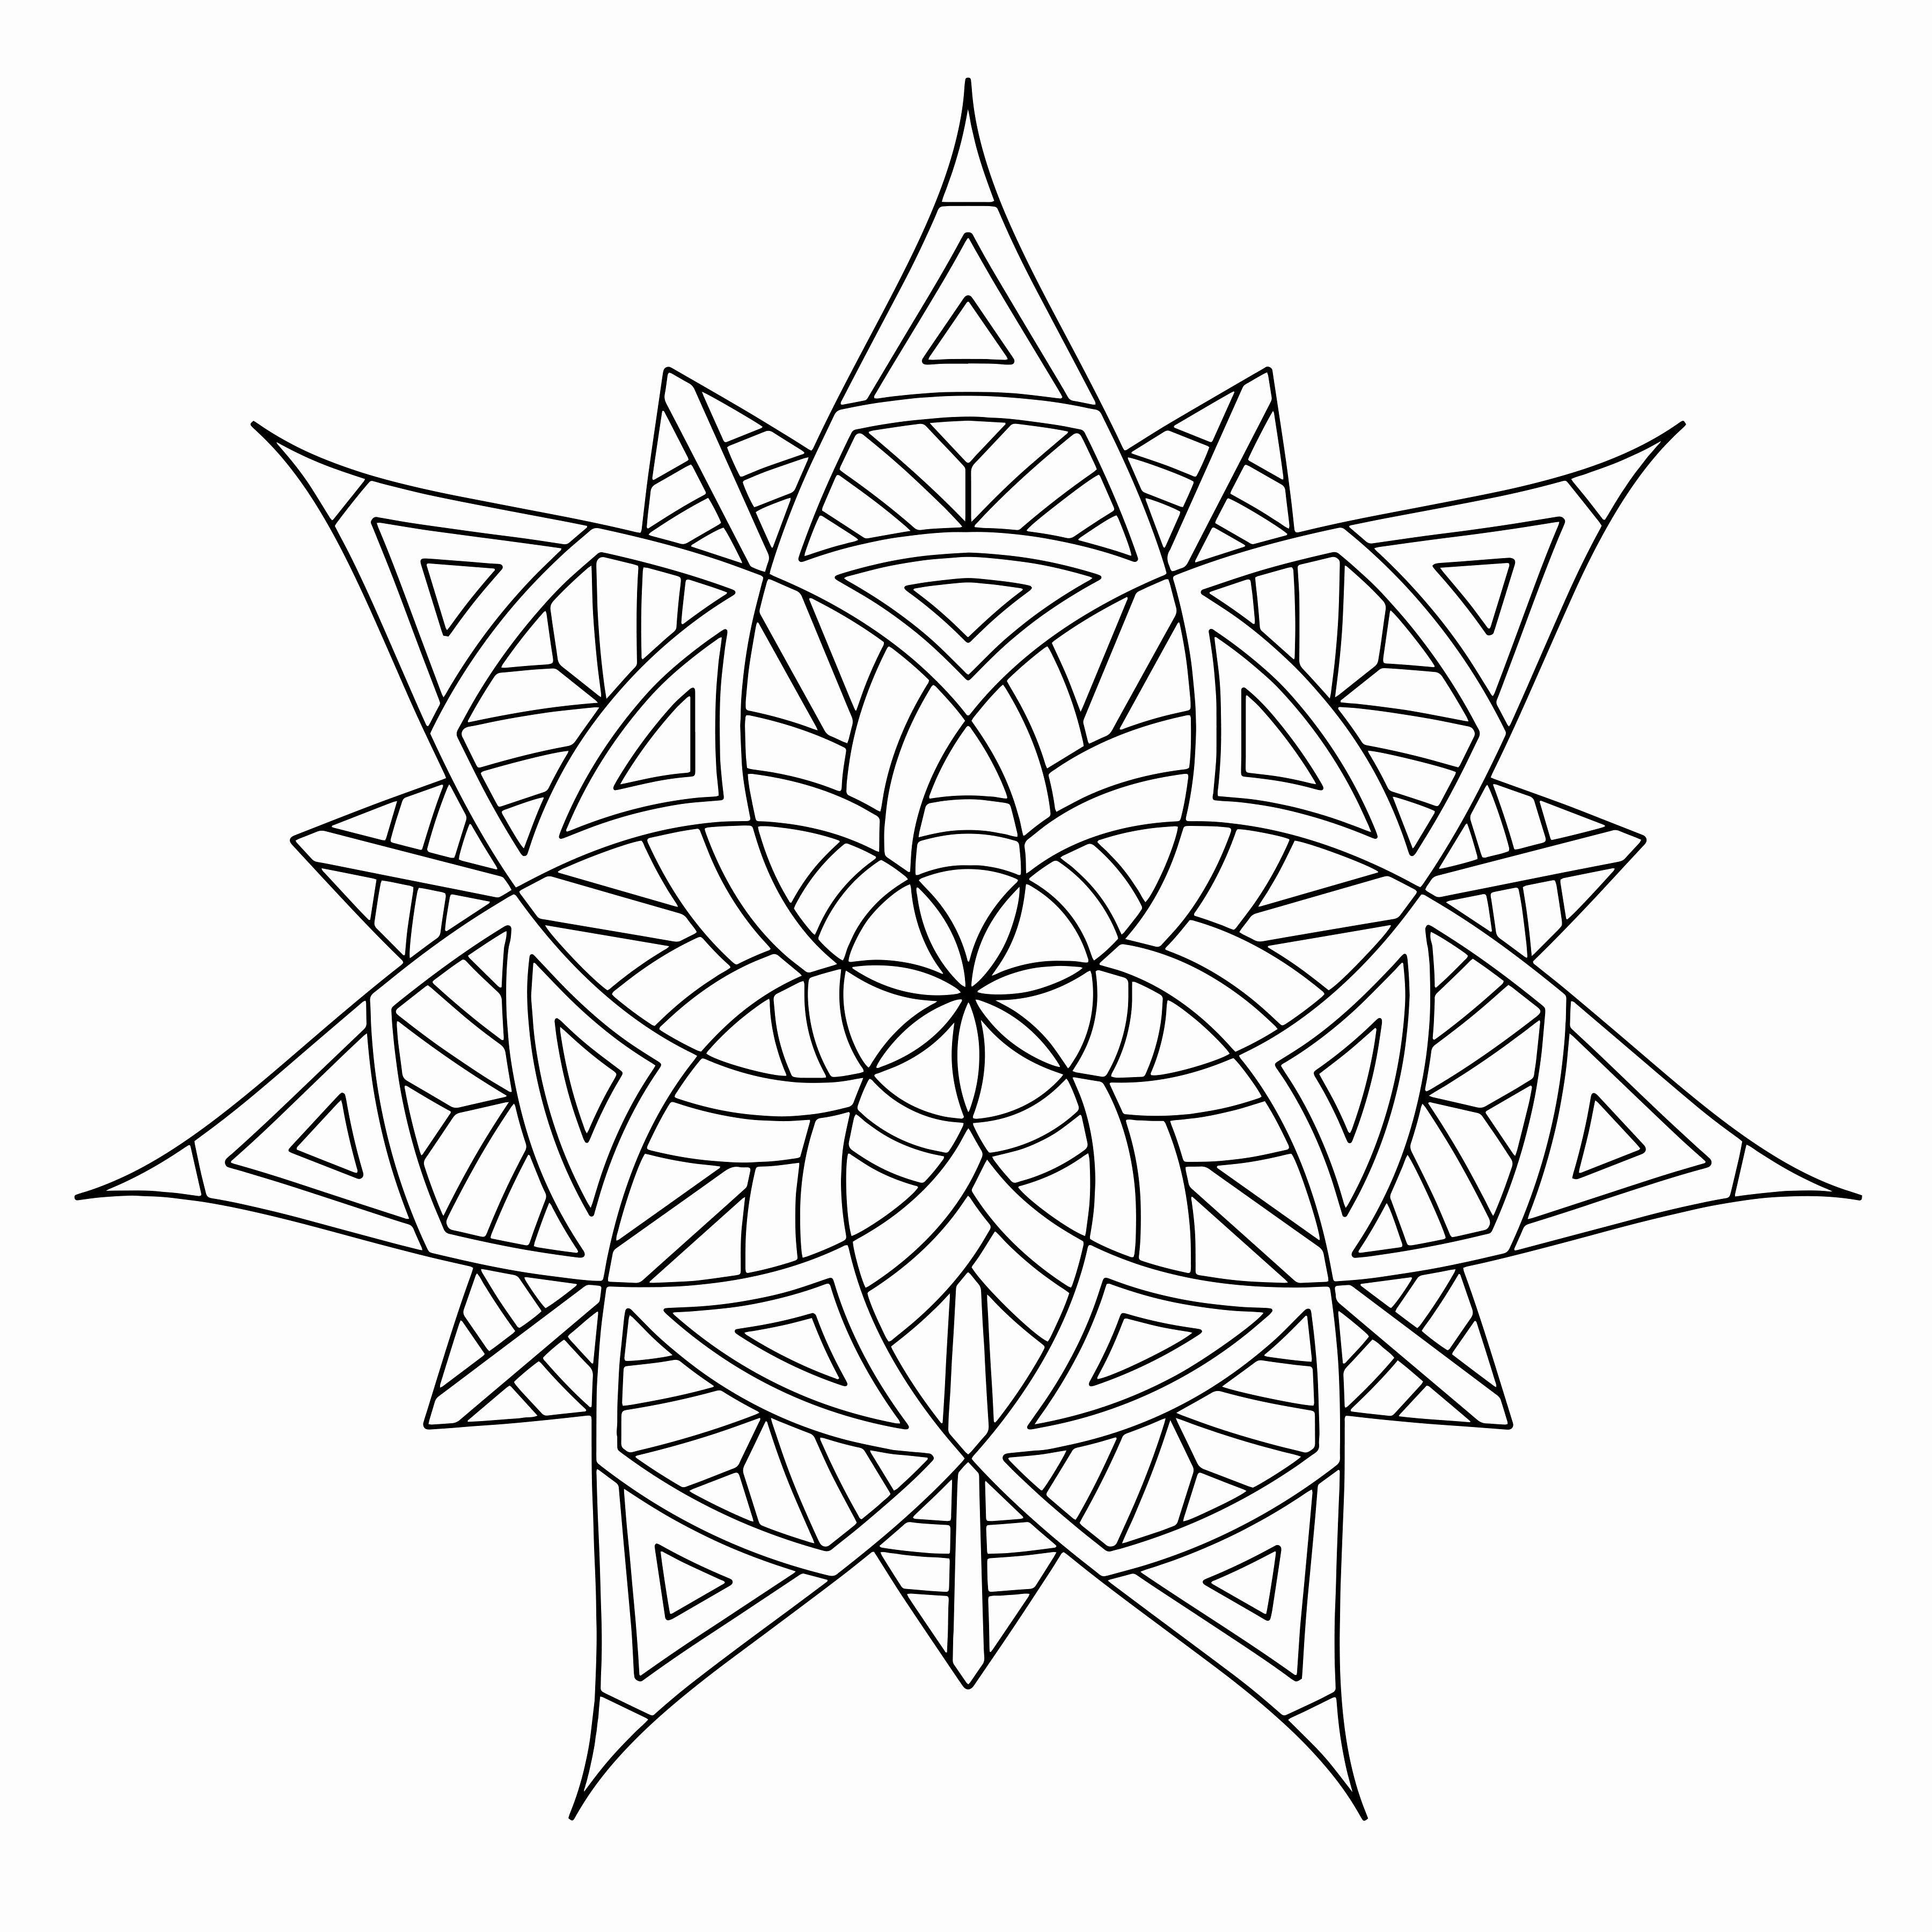 Coloring Pages For Teenagers Printable Elegant Free Printable Geometric Coloring Pages F Geometric Coloring Pages Pattern Coloring Pages Mandala Coloring Pages